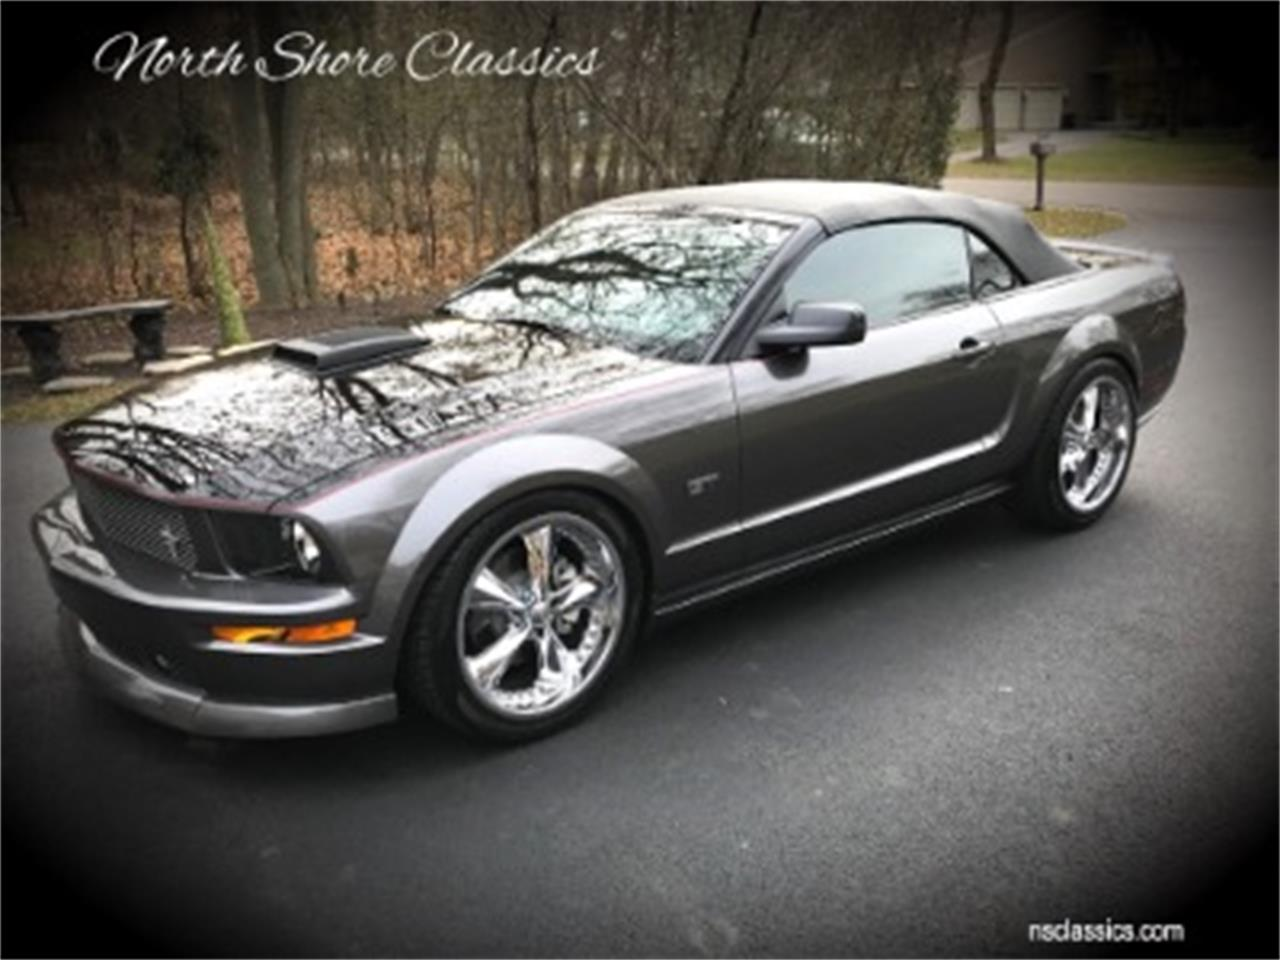 Large Picture of 2006 Ford Mustang located in Illinois - MOAW